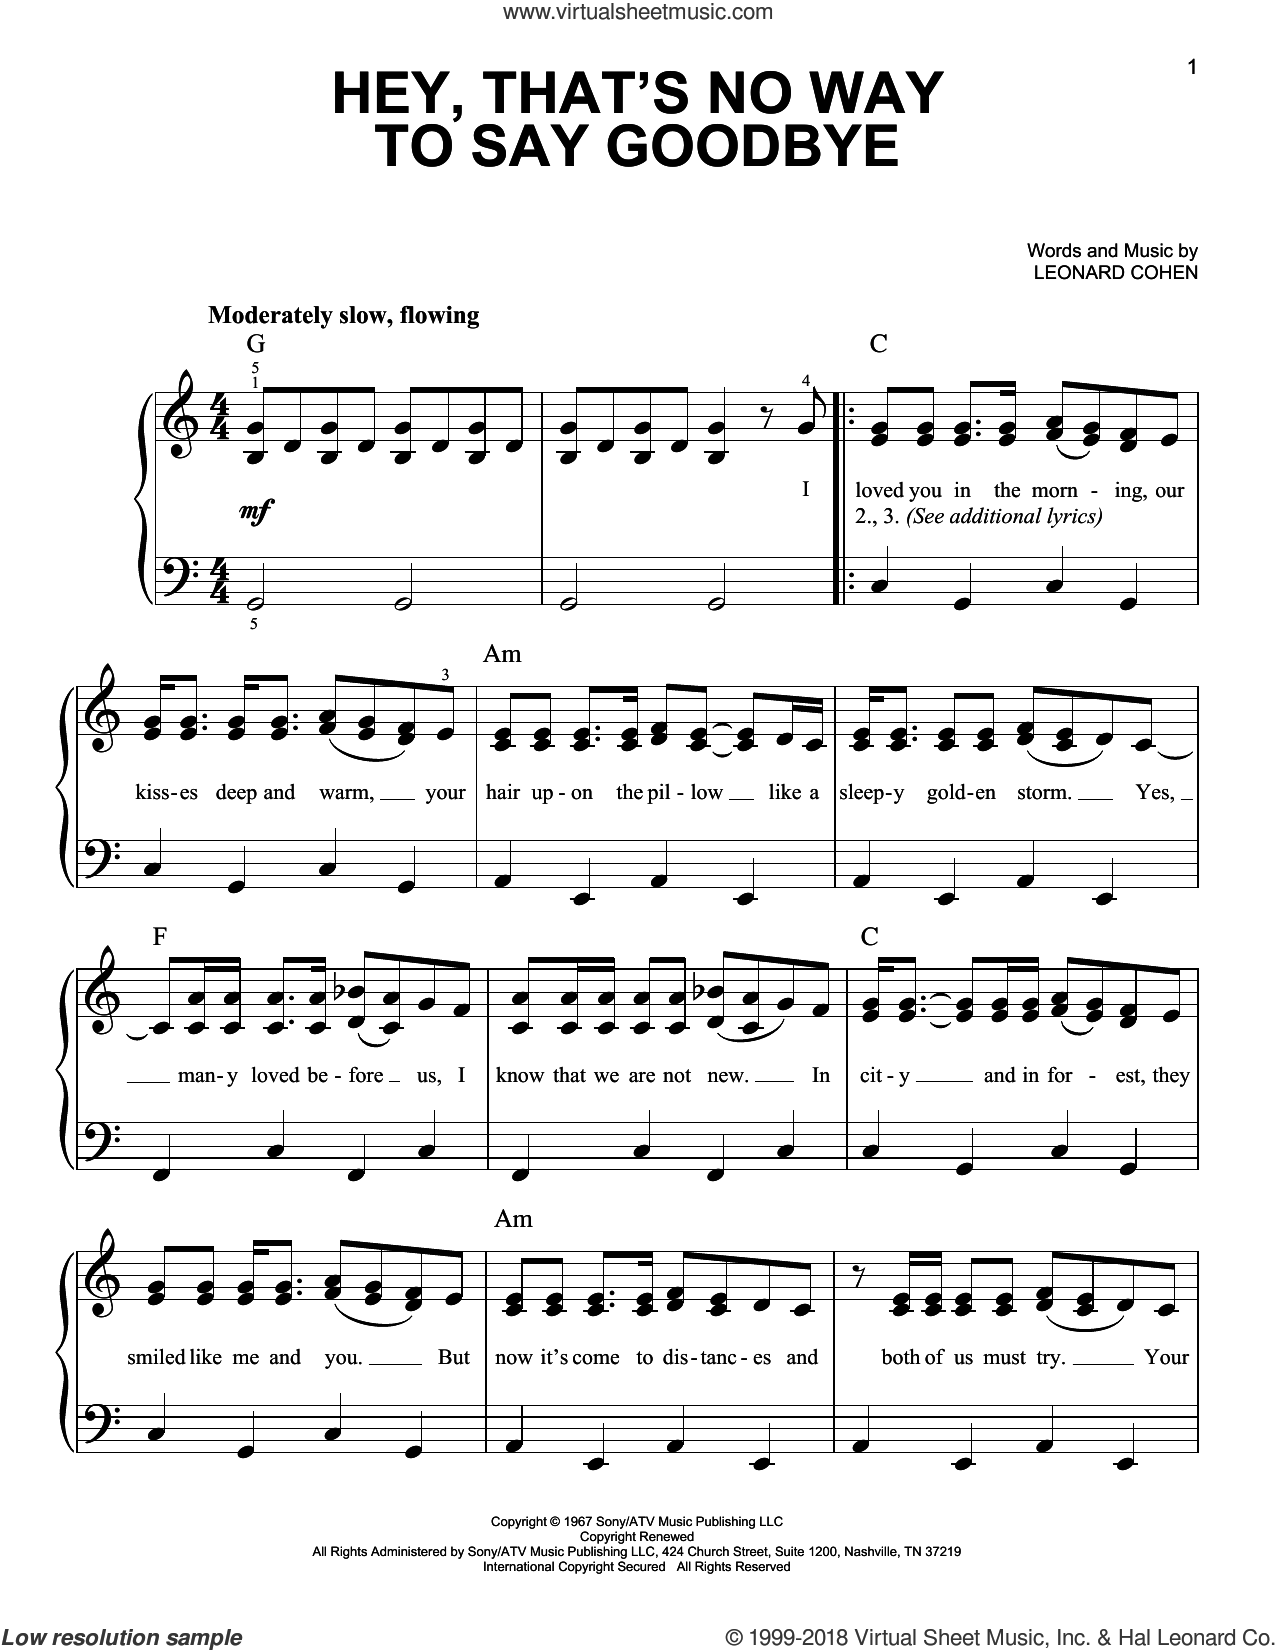 Hey, That's No Way To Say Goodbye sheet music for piano solo by Leonard Cohen, easy skill level